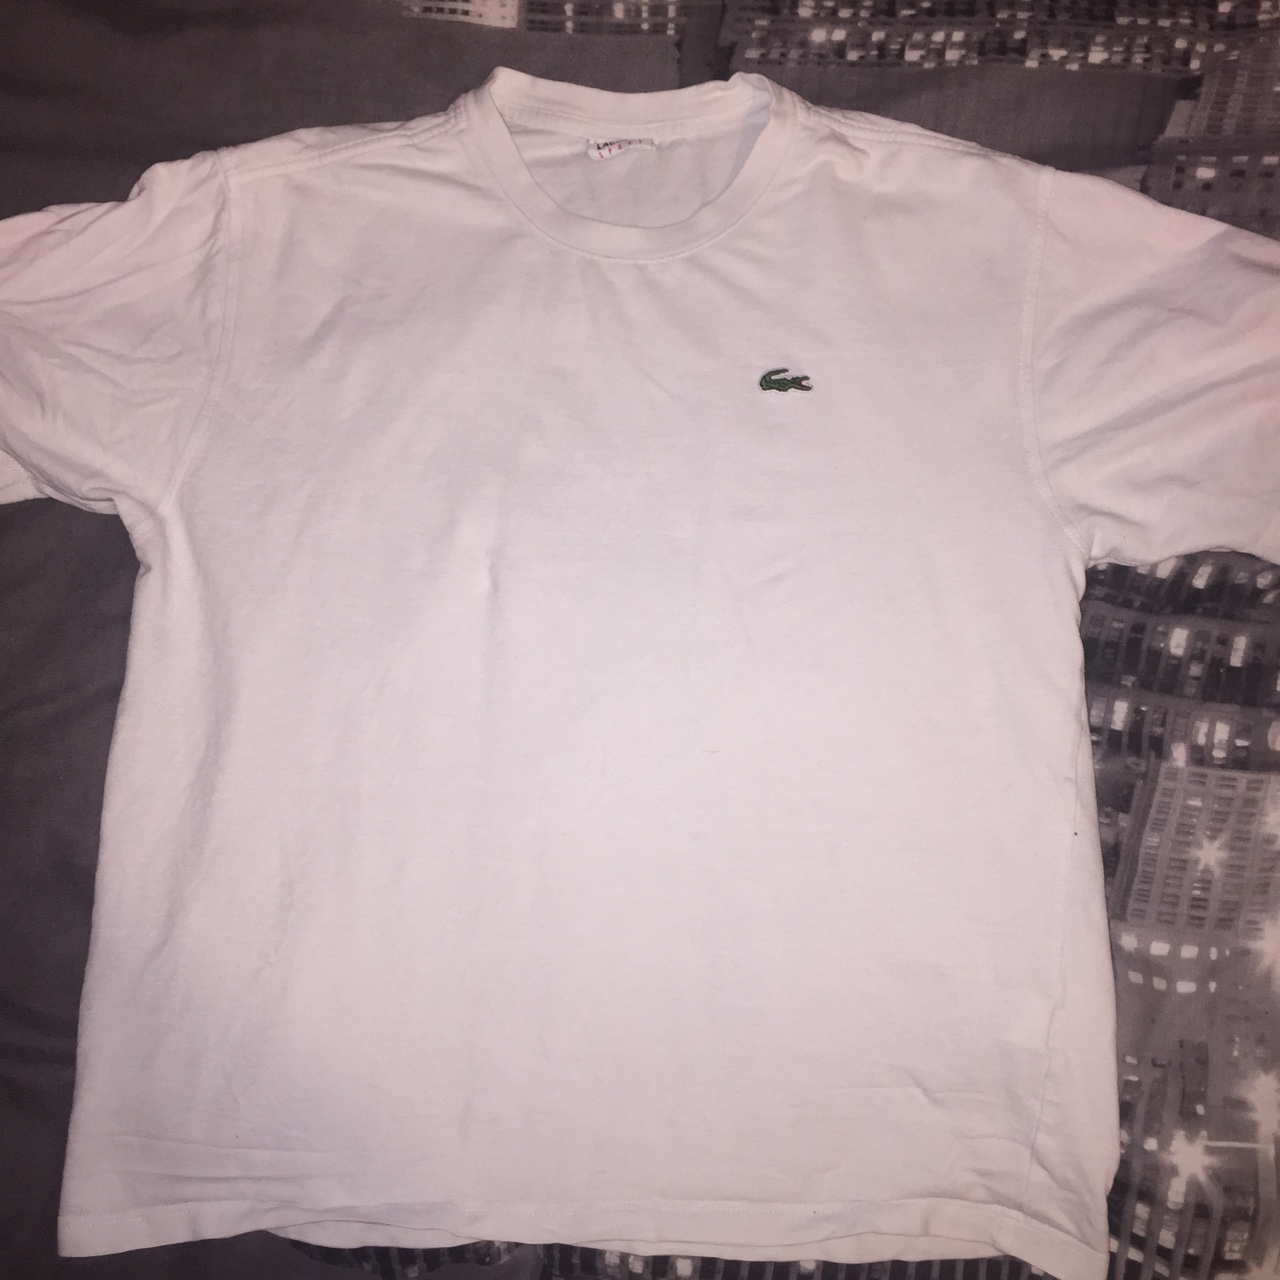 biggest discount arrives really comfortable Lacoste Sport white t-shirt Lacoste size 5 (UK... - Depop